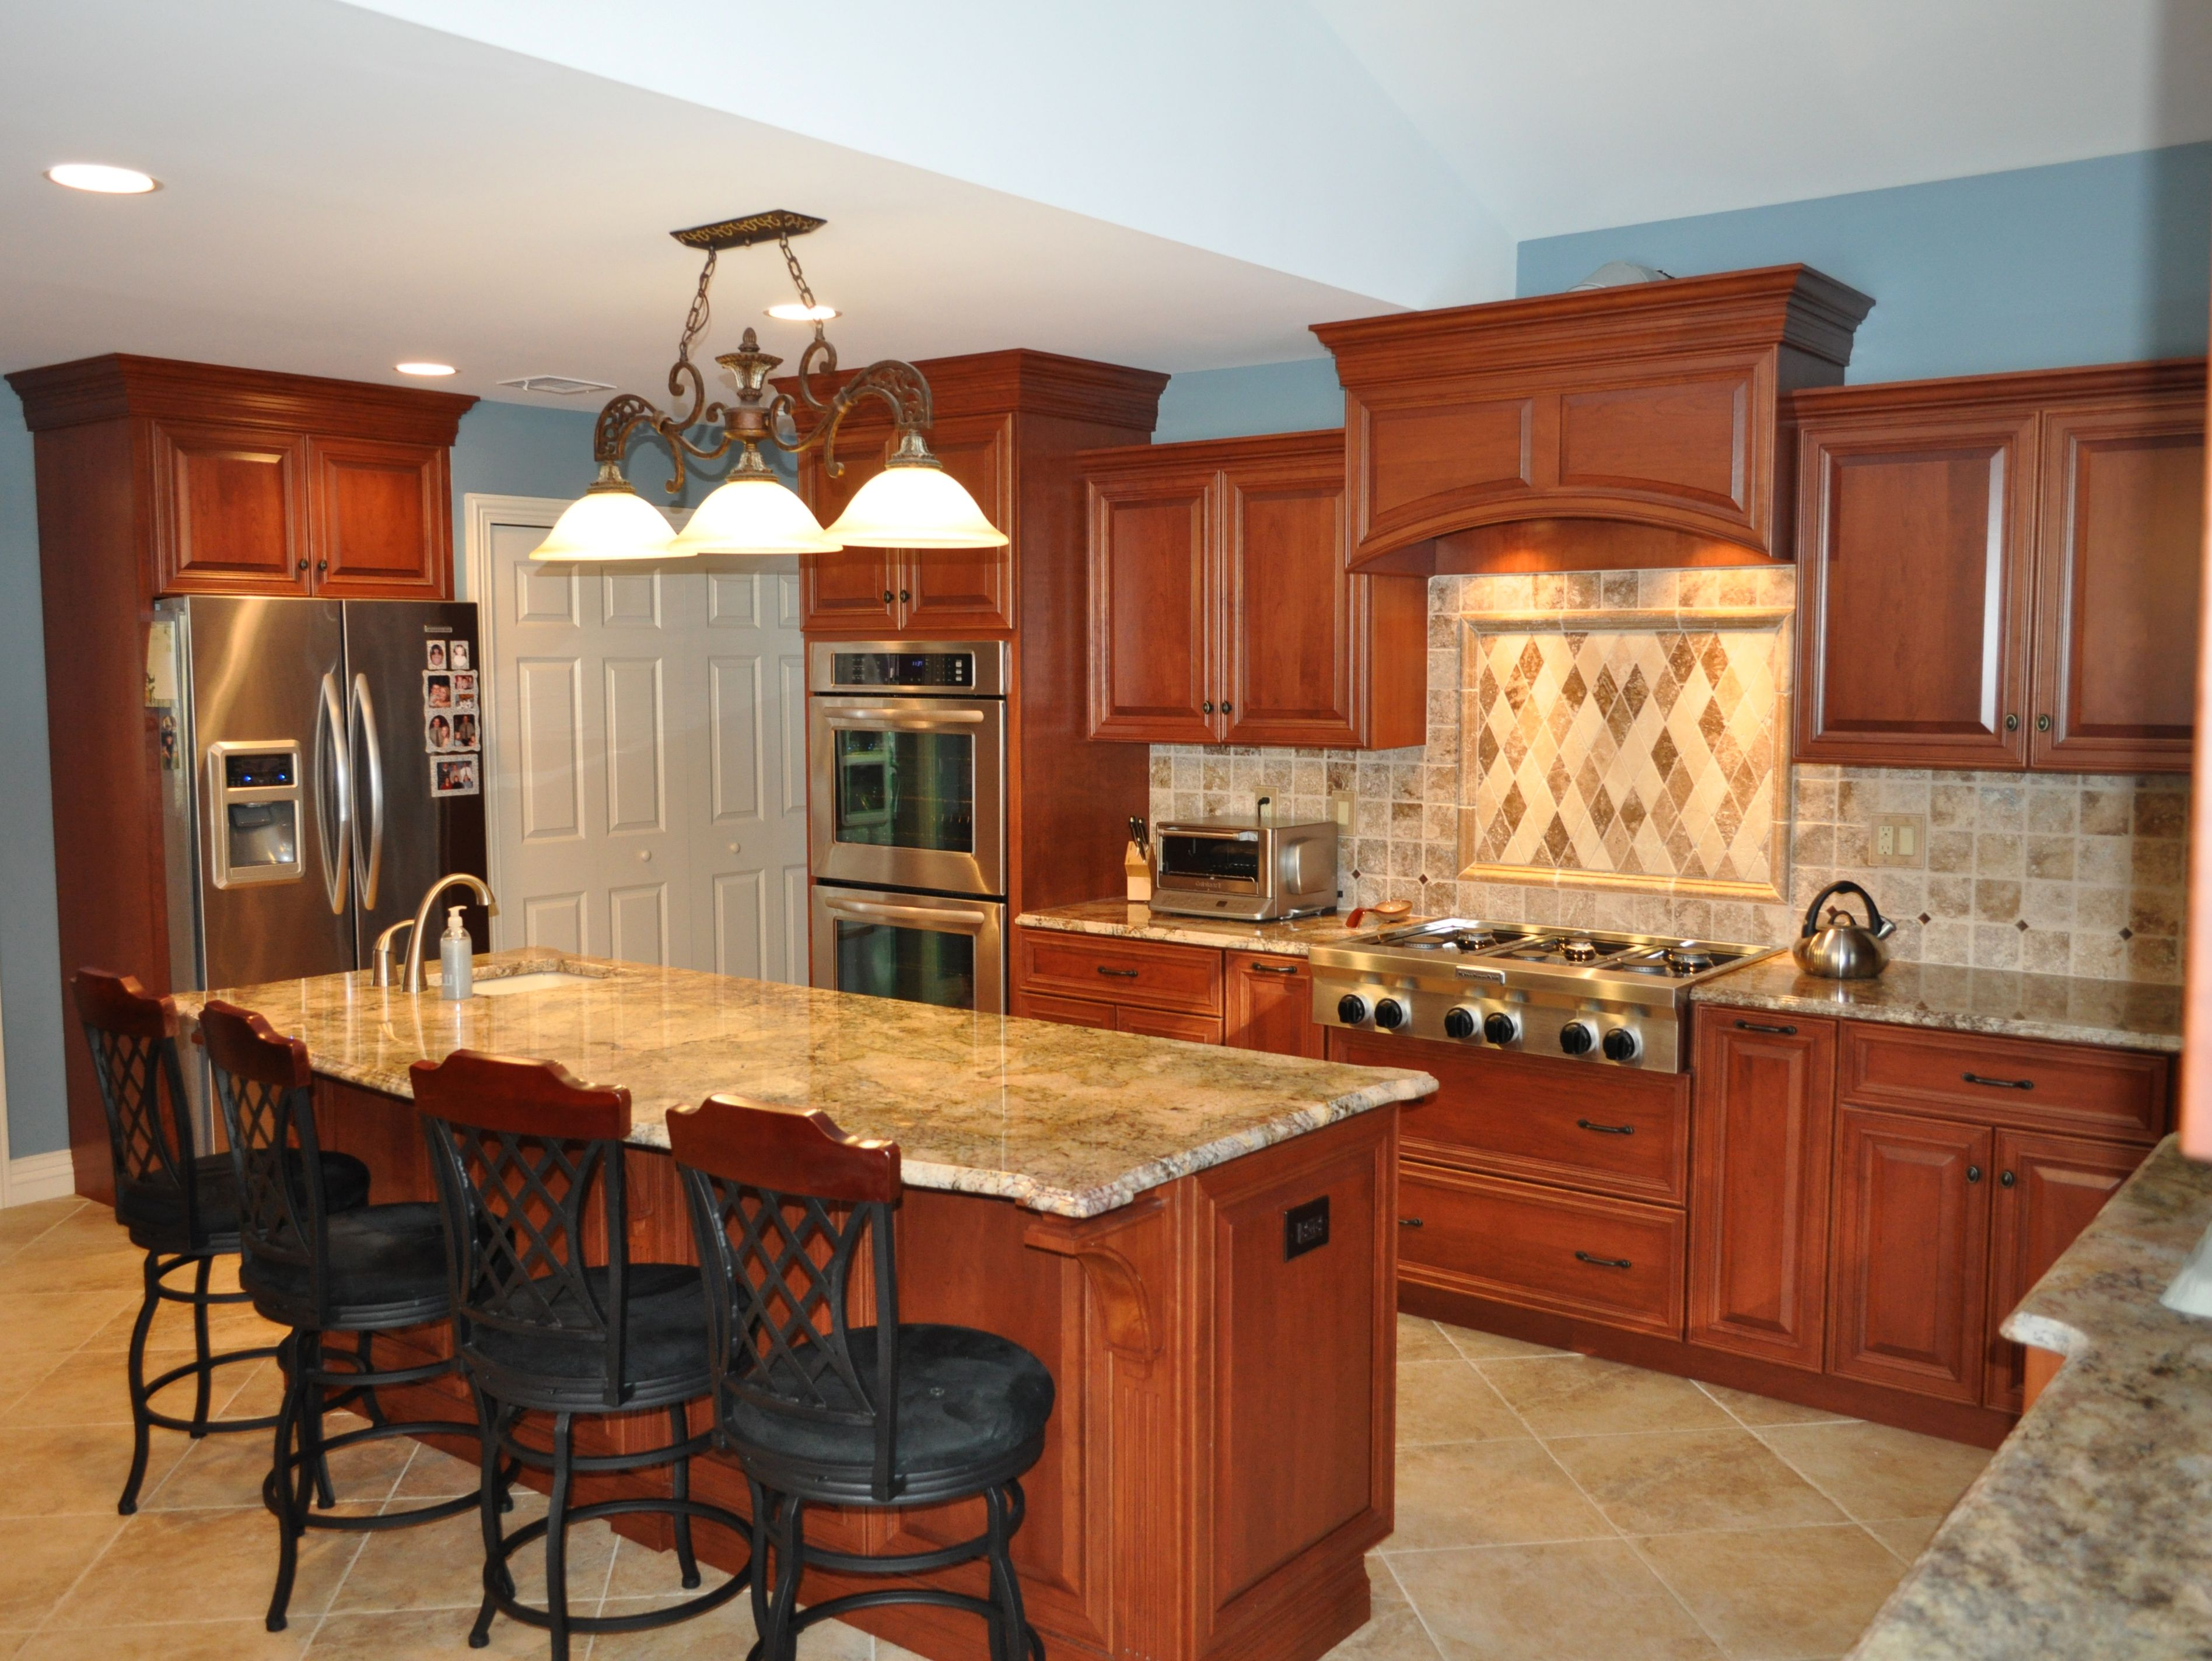 Kitchens Come Together Nicely With Brighton Cabinetry Cabinets.